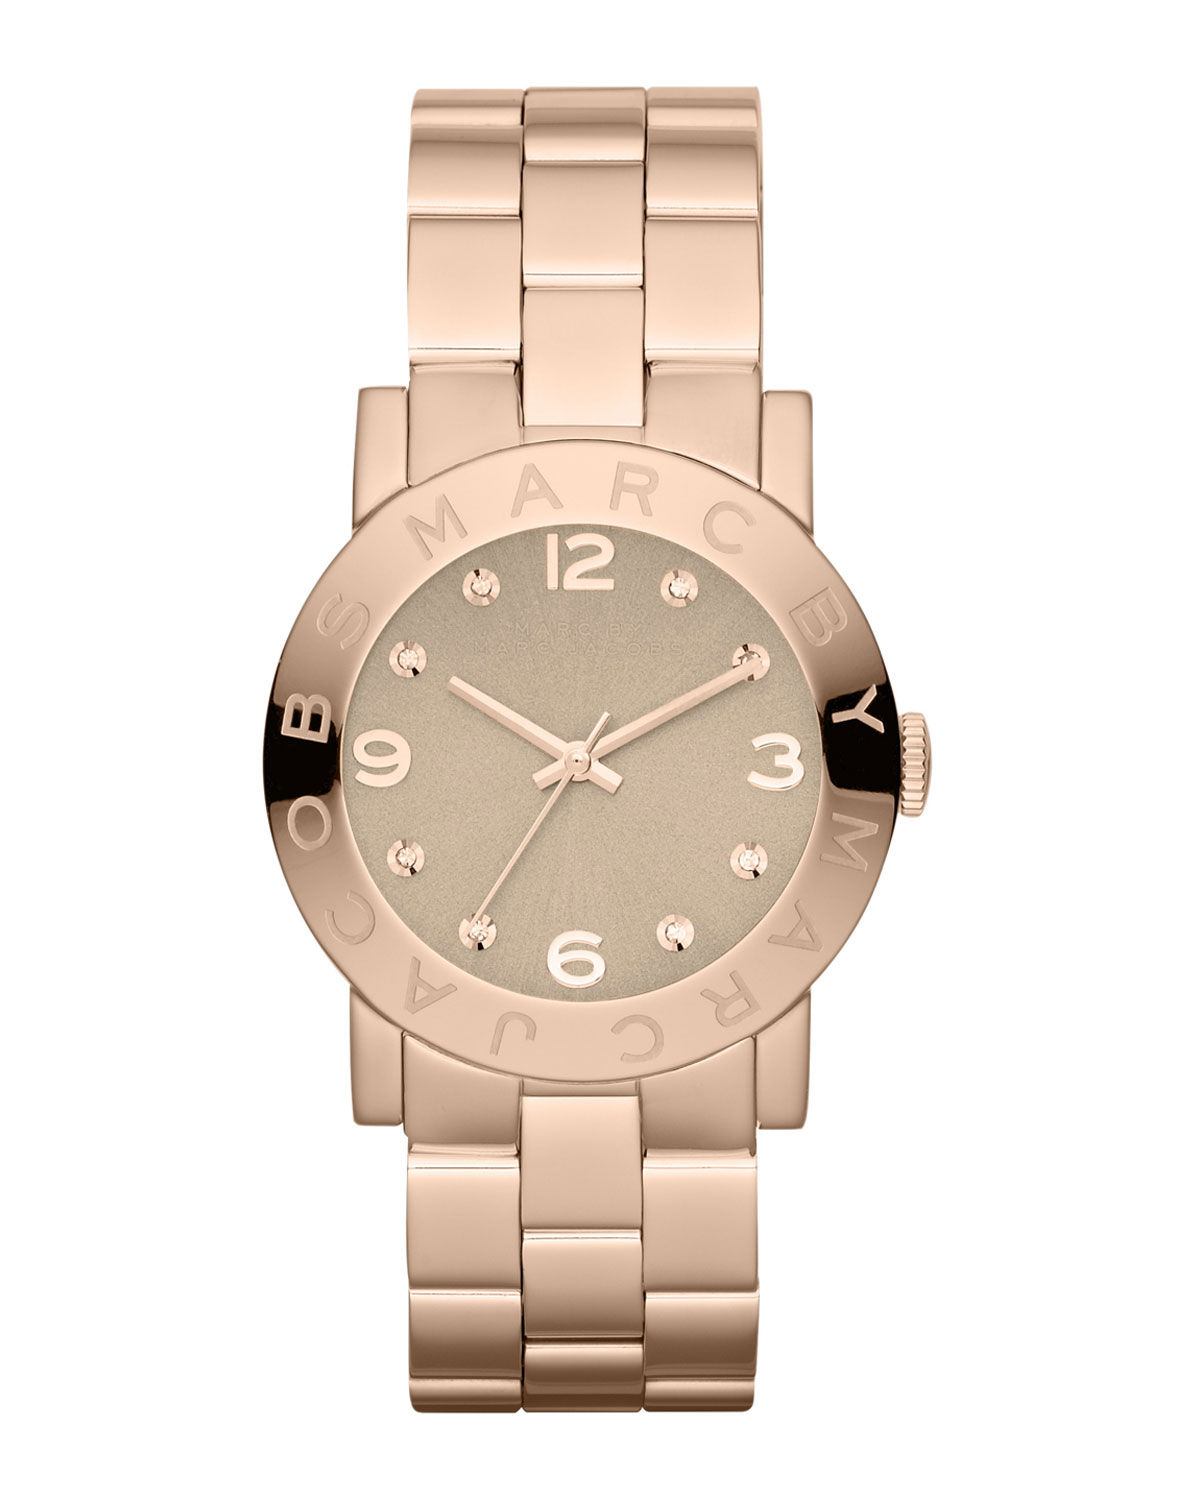 AMY ROSE GOLD ANALOG WATCH